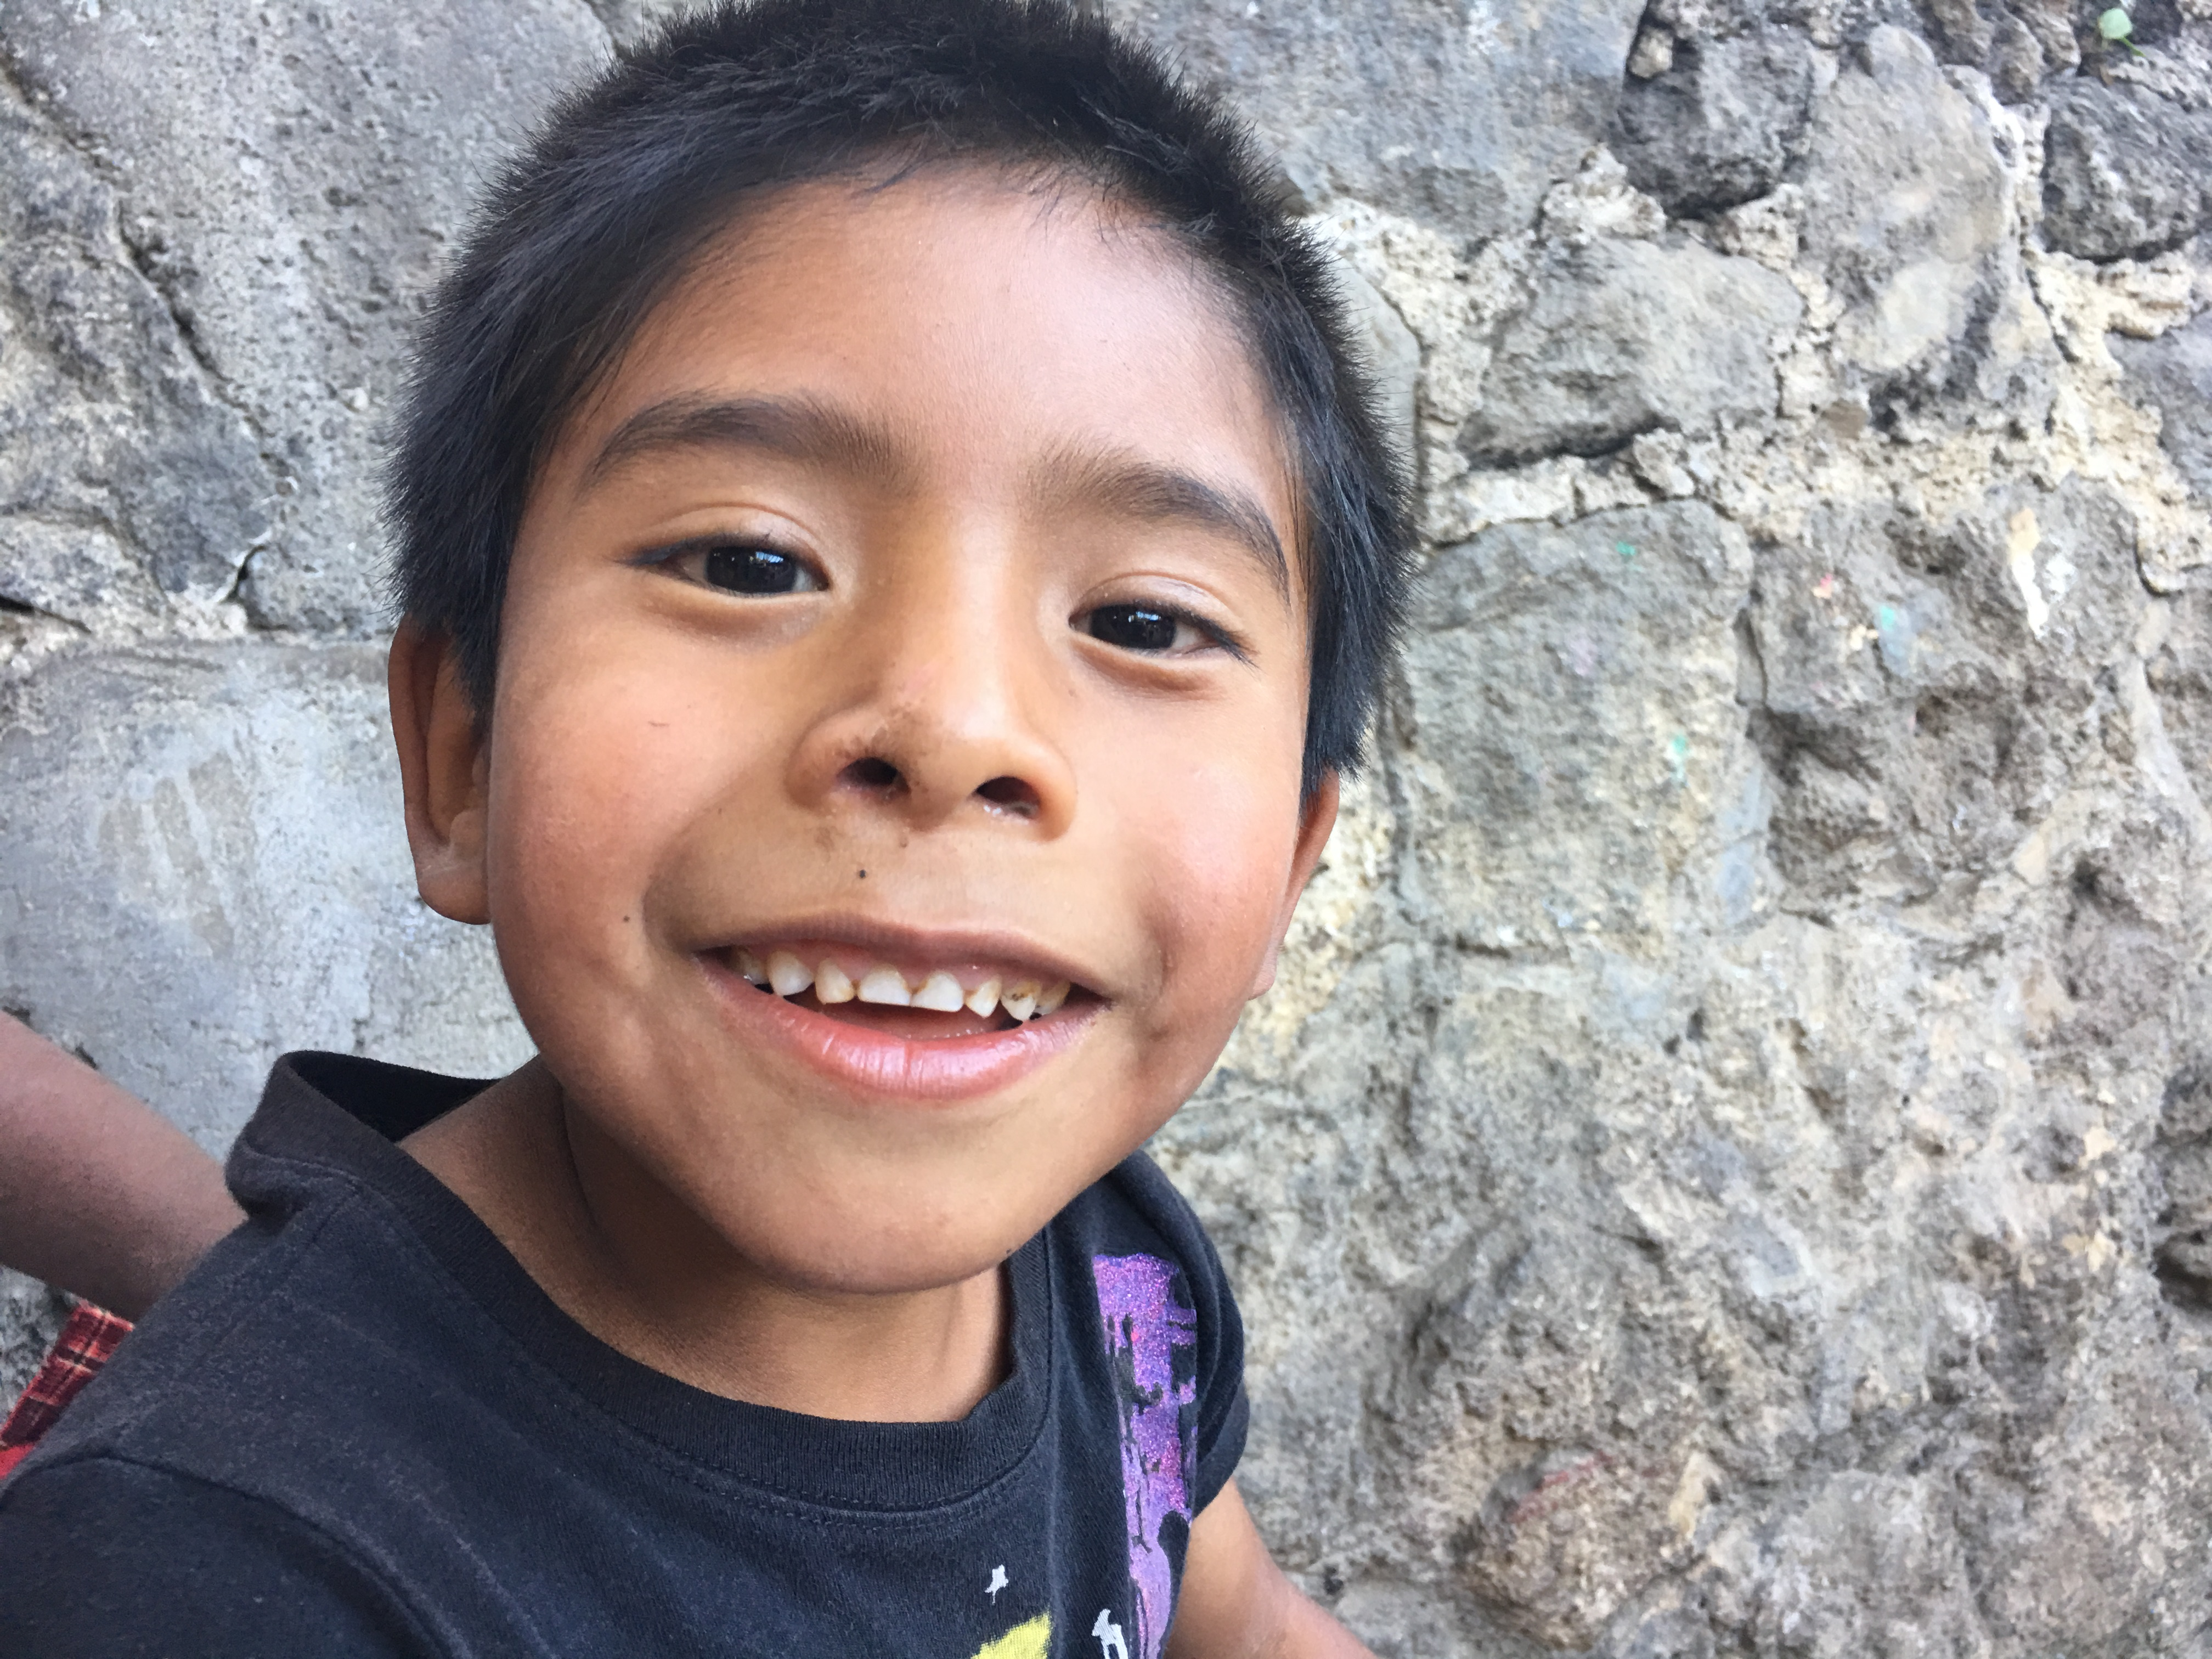 Discussing the future of orphan care in Guatemala